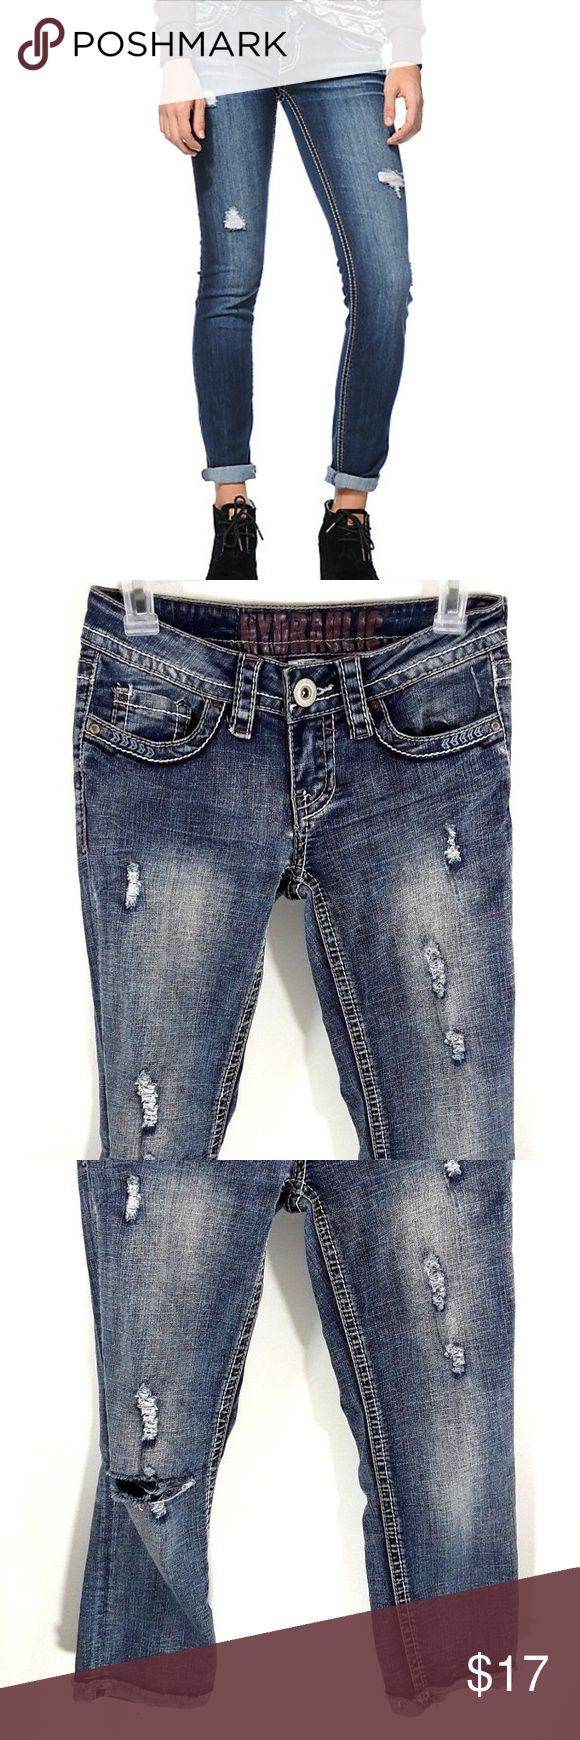 Hydraulic jeans French Cuffs Distressed Size 3/4 Womens Hydraulic jeans Bailey Distressed Embellished Size 3/4 French Cuffs Hydraulic Jeans Skinny